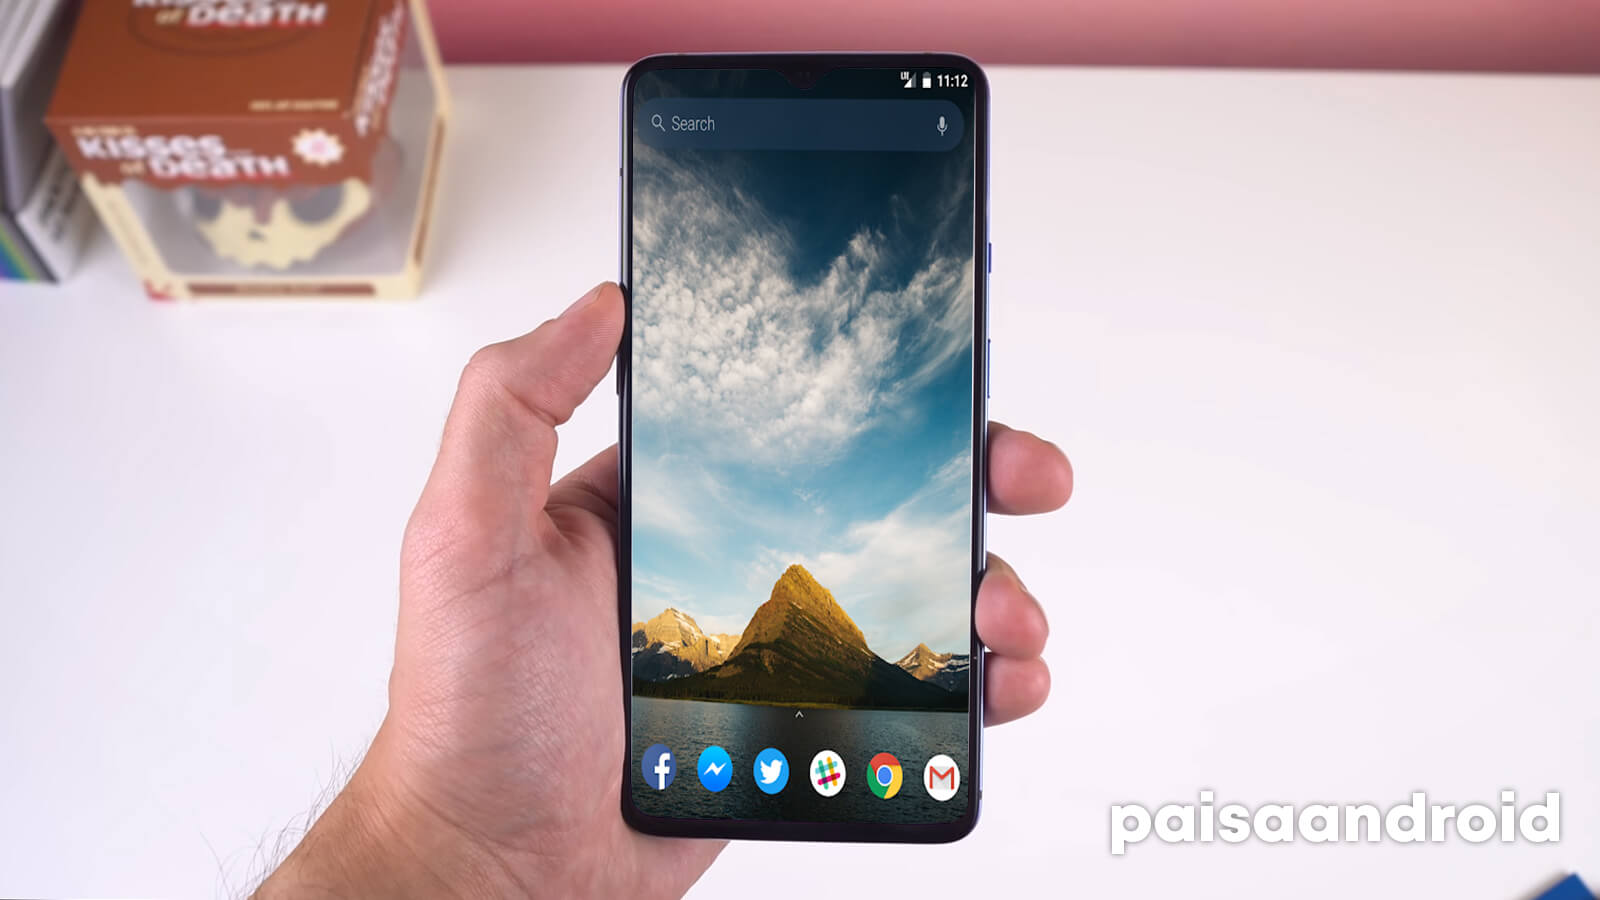 mejores launchers android 2019